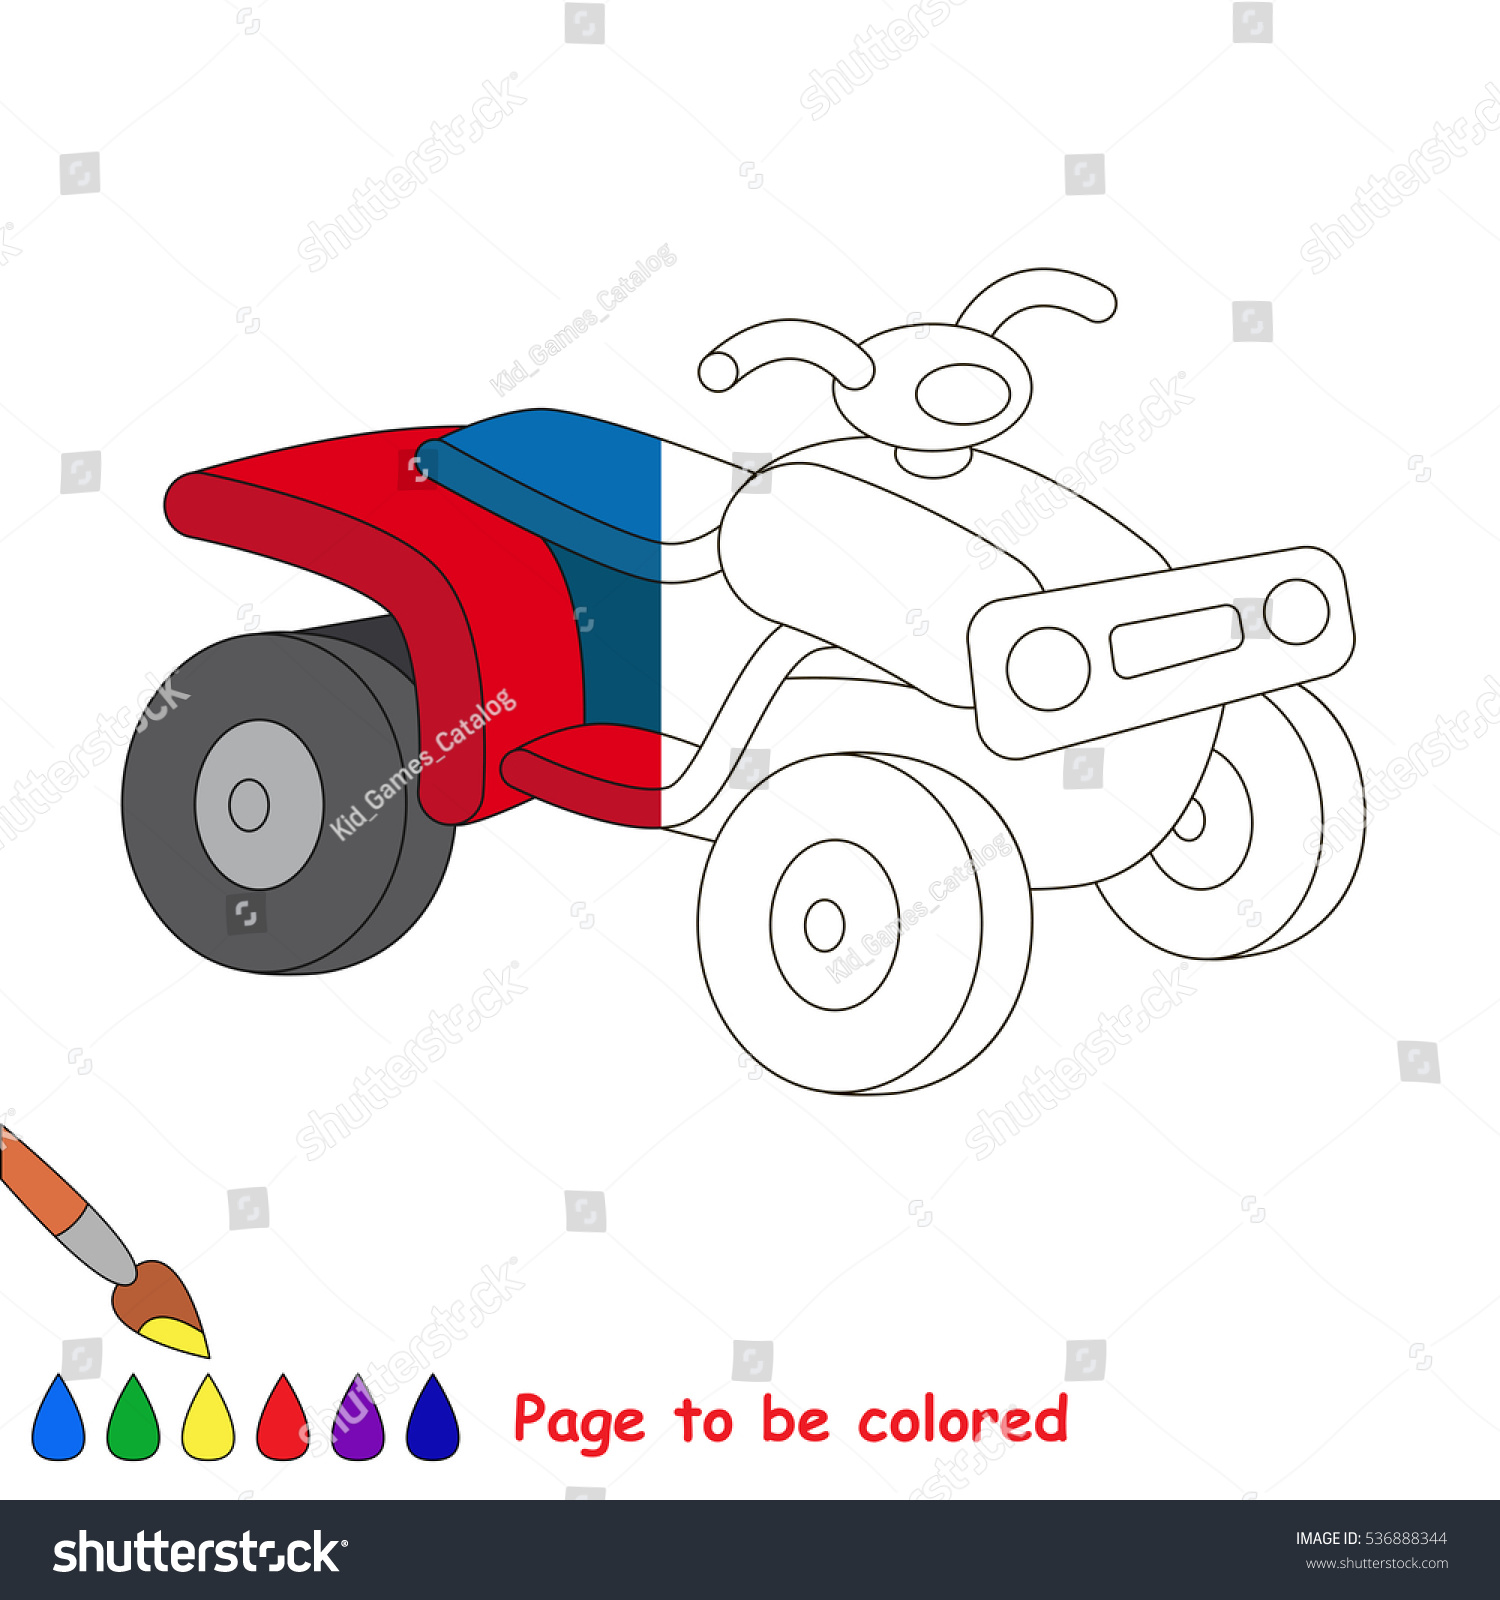 quad bike be colored coloring book stock vector 536888344